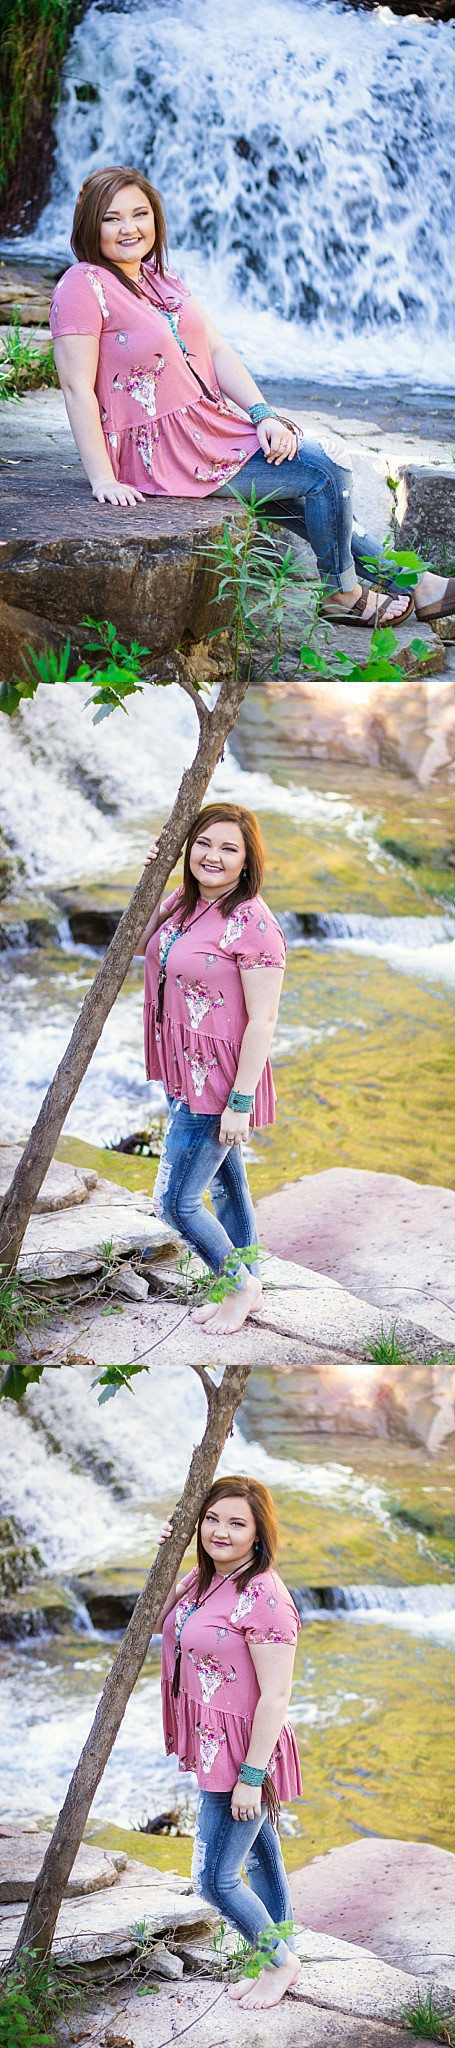 Stephanie McBee Photography - Hannah Smith Jasper, Ar Senior